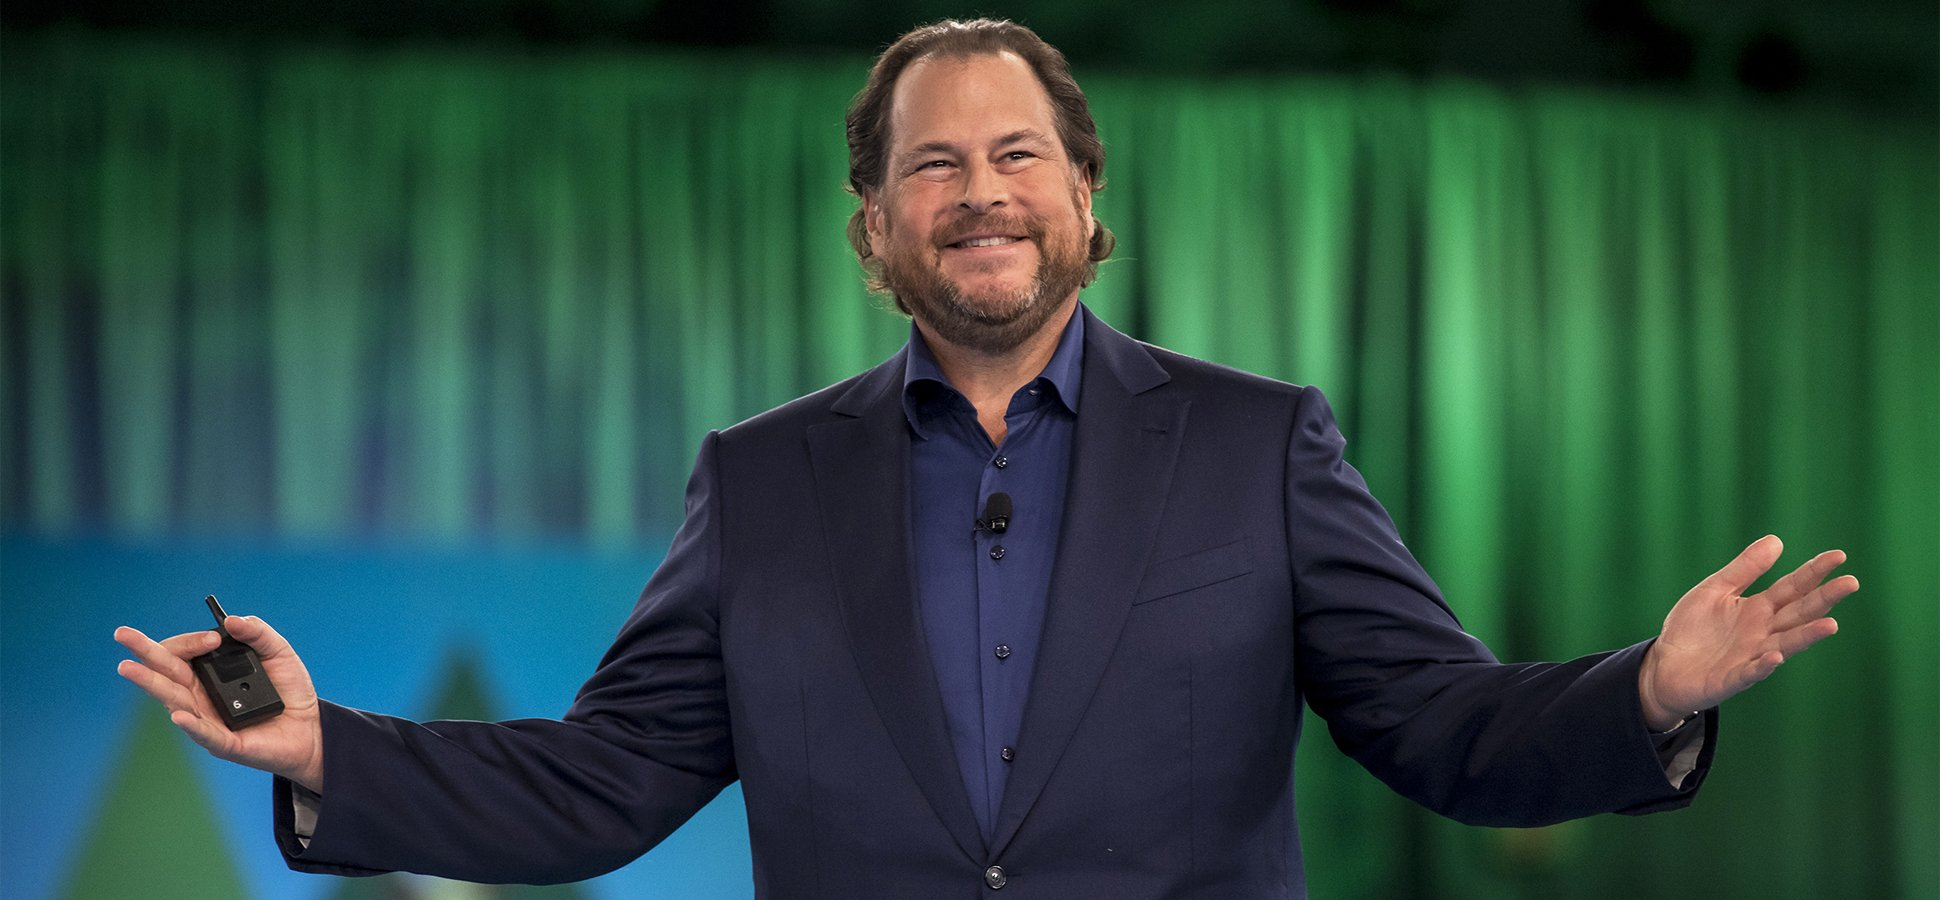 My run-in with Marc Benioff, and tips to be a star performer pics